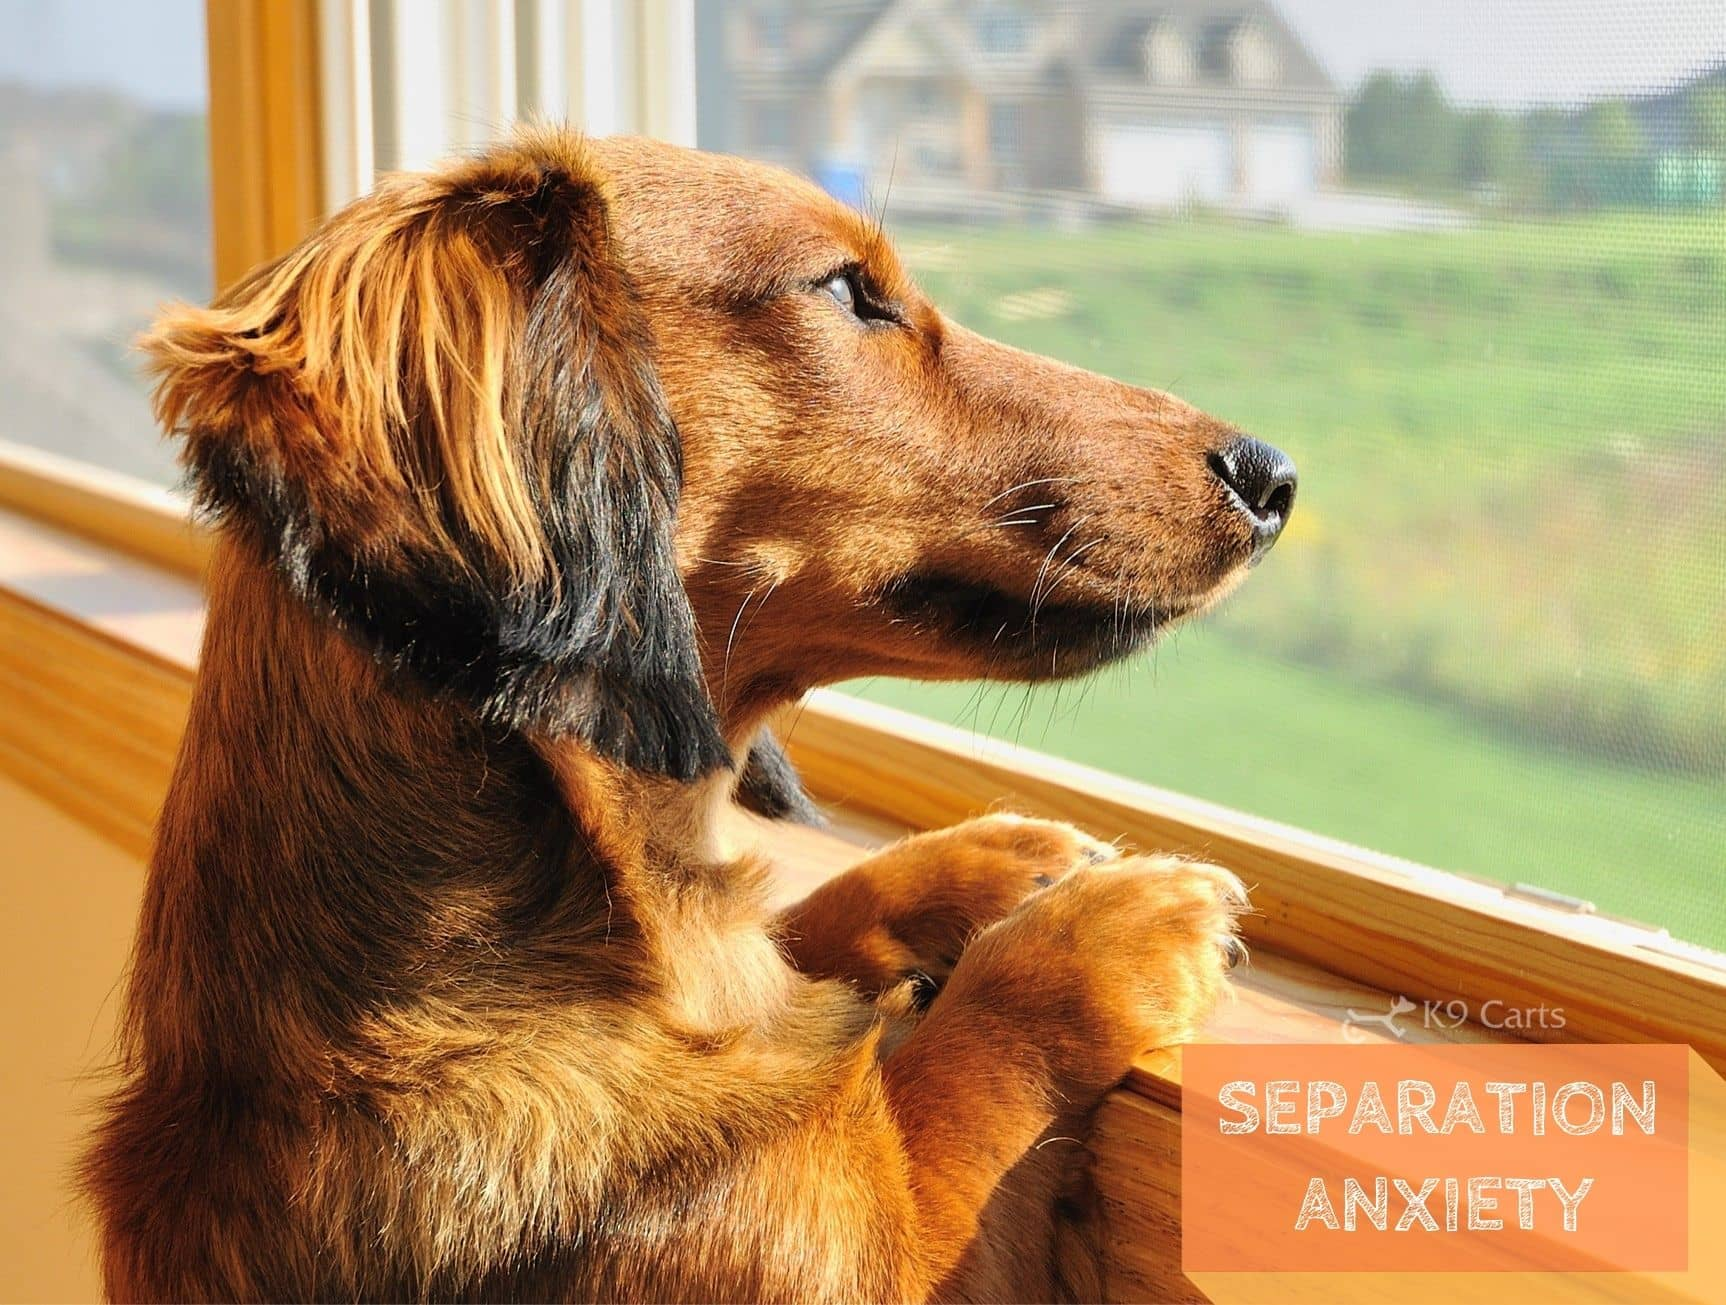 Dog showing signs of separation anxiety disorder